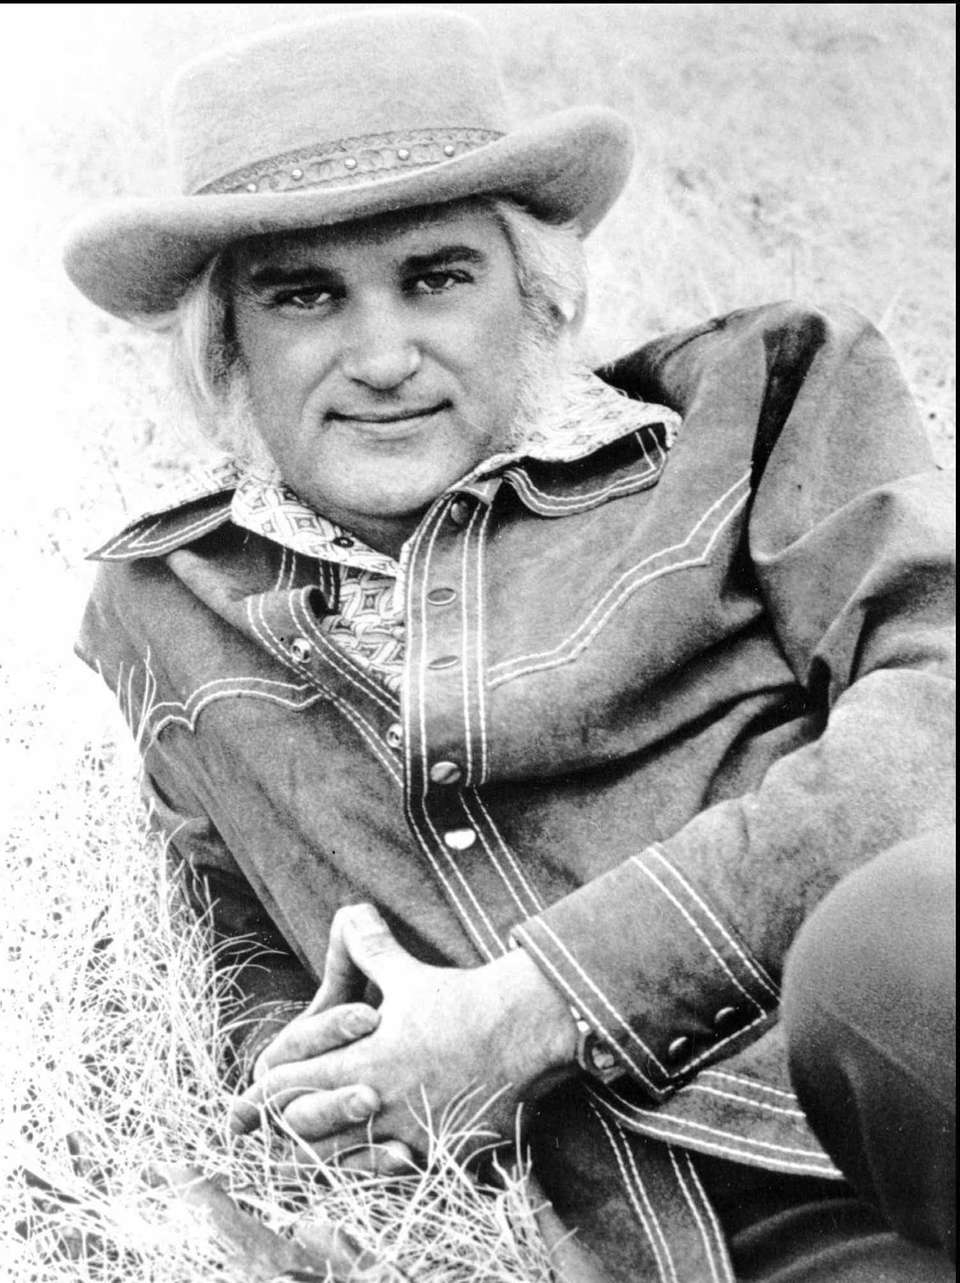 Charlie Rich, the soulful, silver-haired balladeer who topped